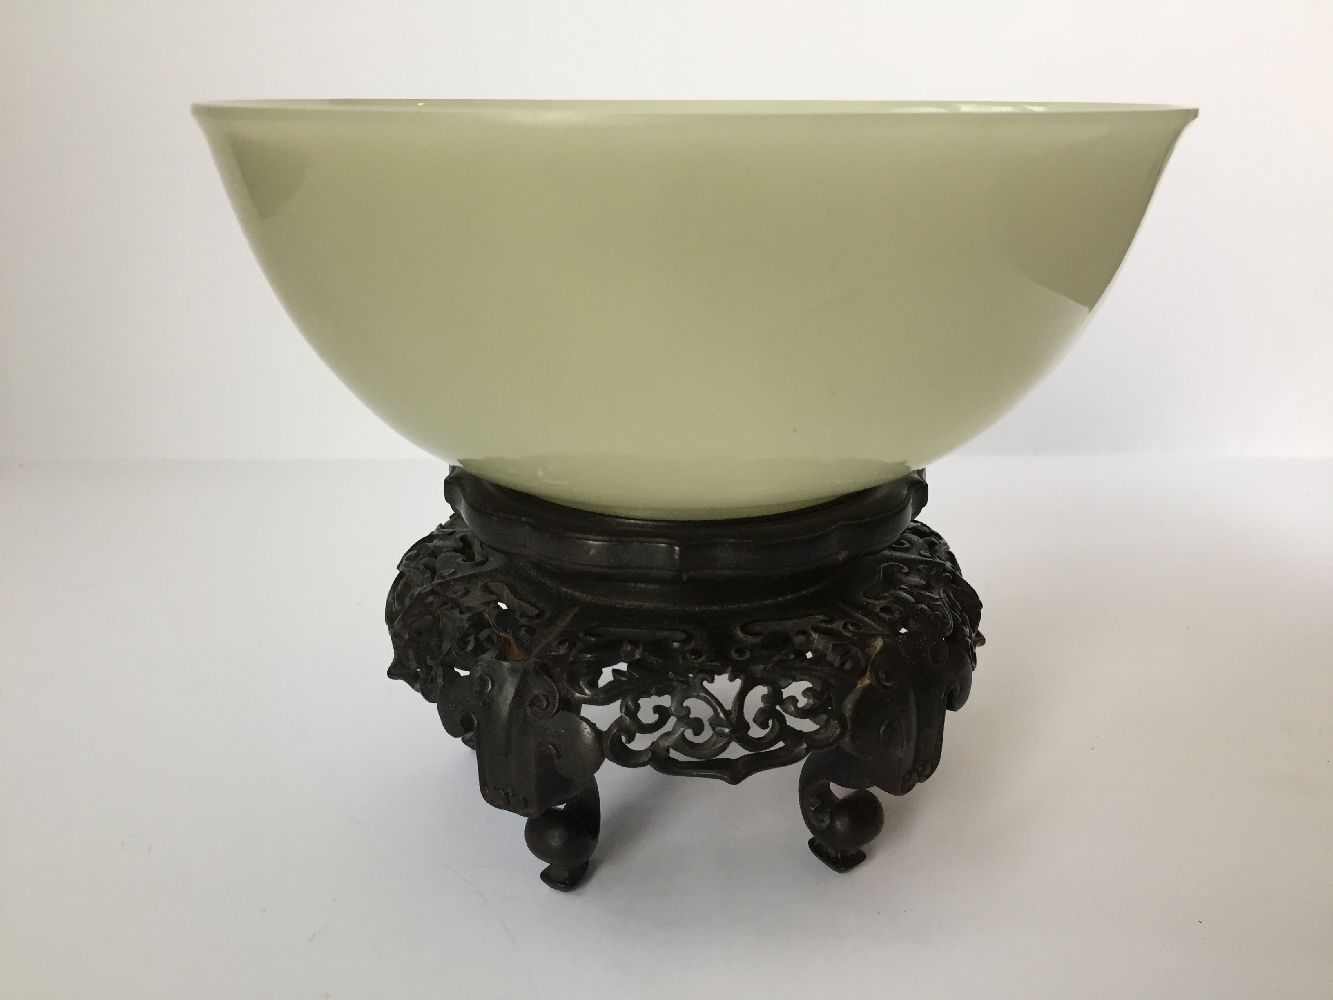 A pair of Chinese pale celadon jade bowls, 19th century, each carved with deep sides and a - Image 20 of 27